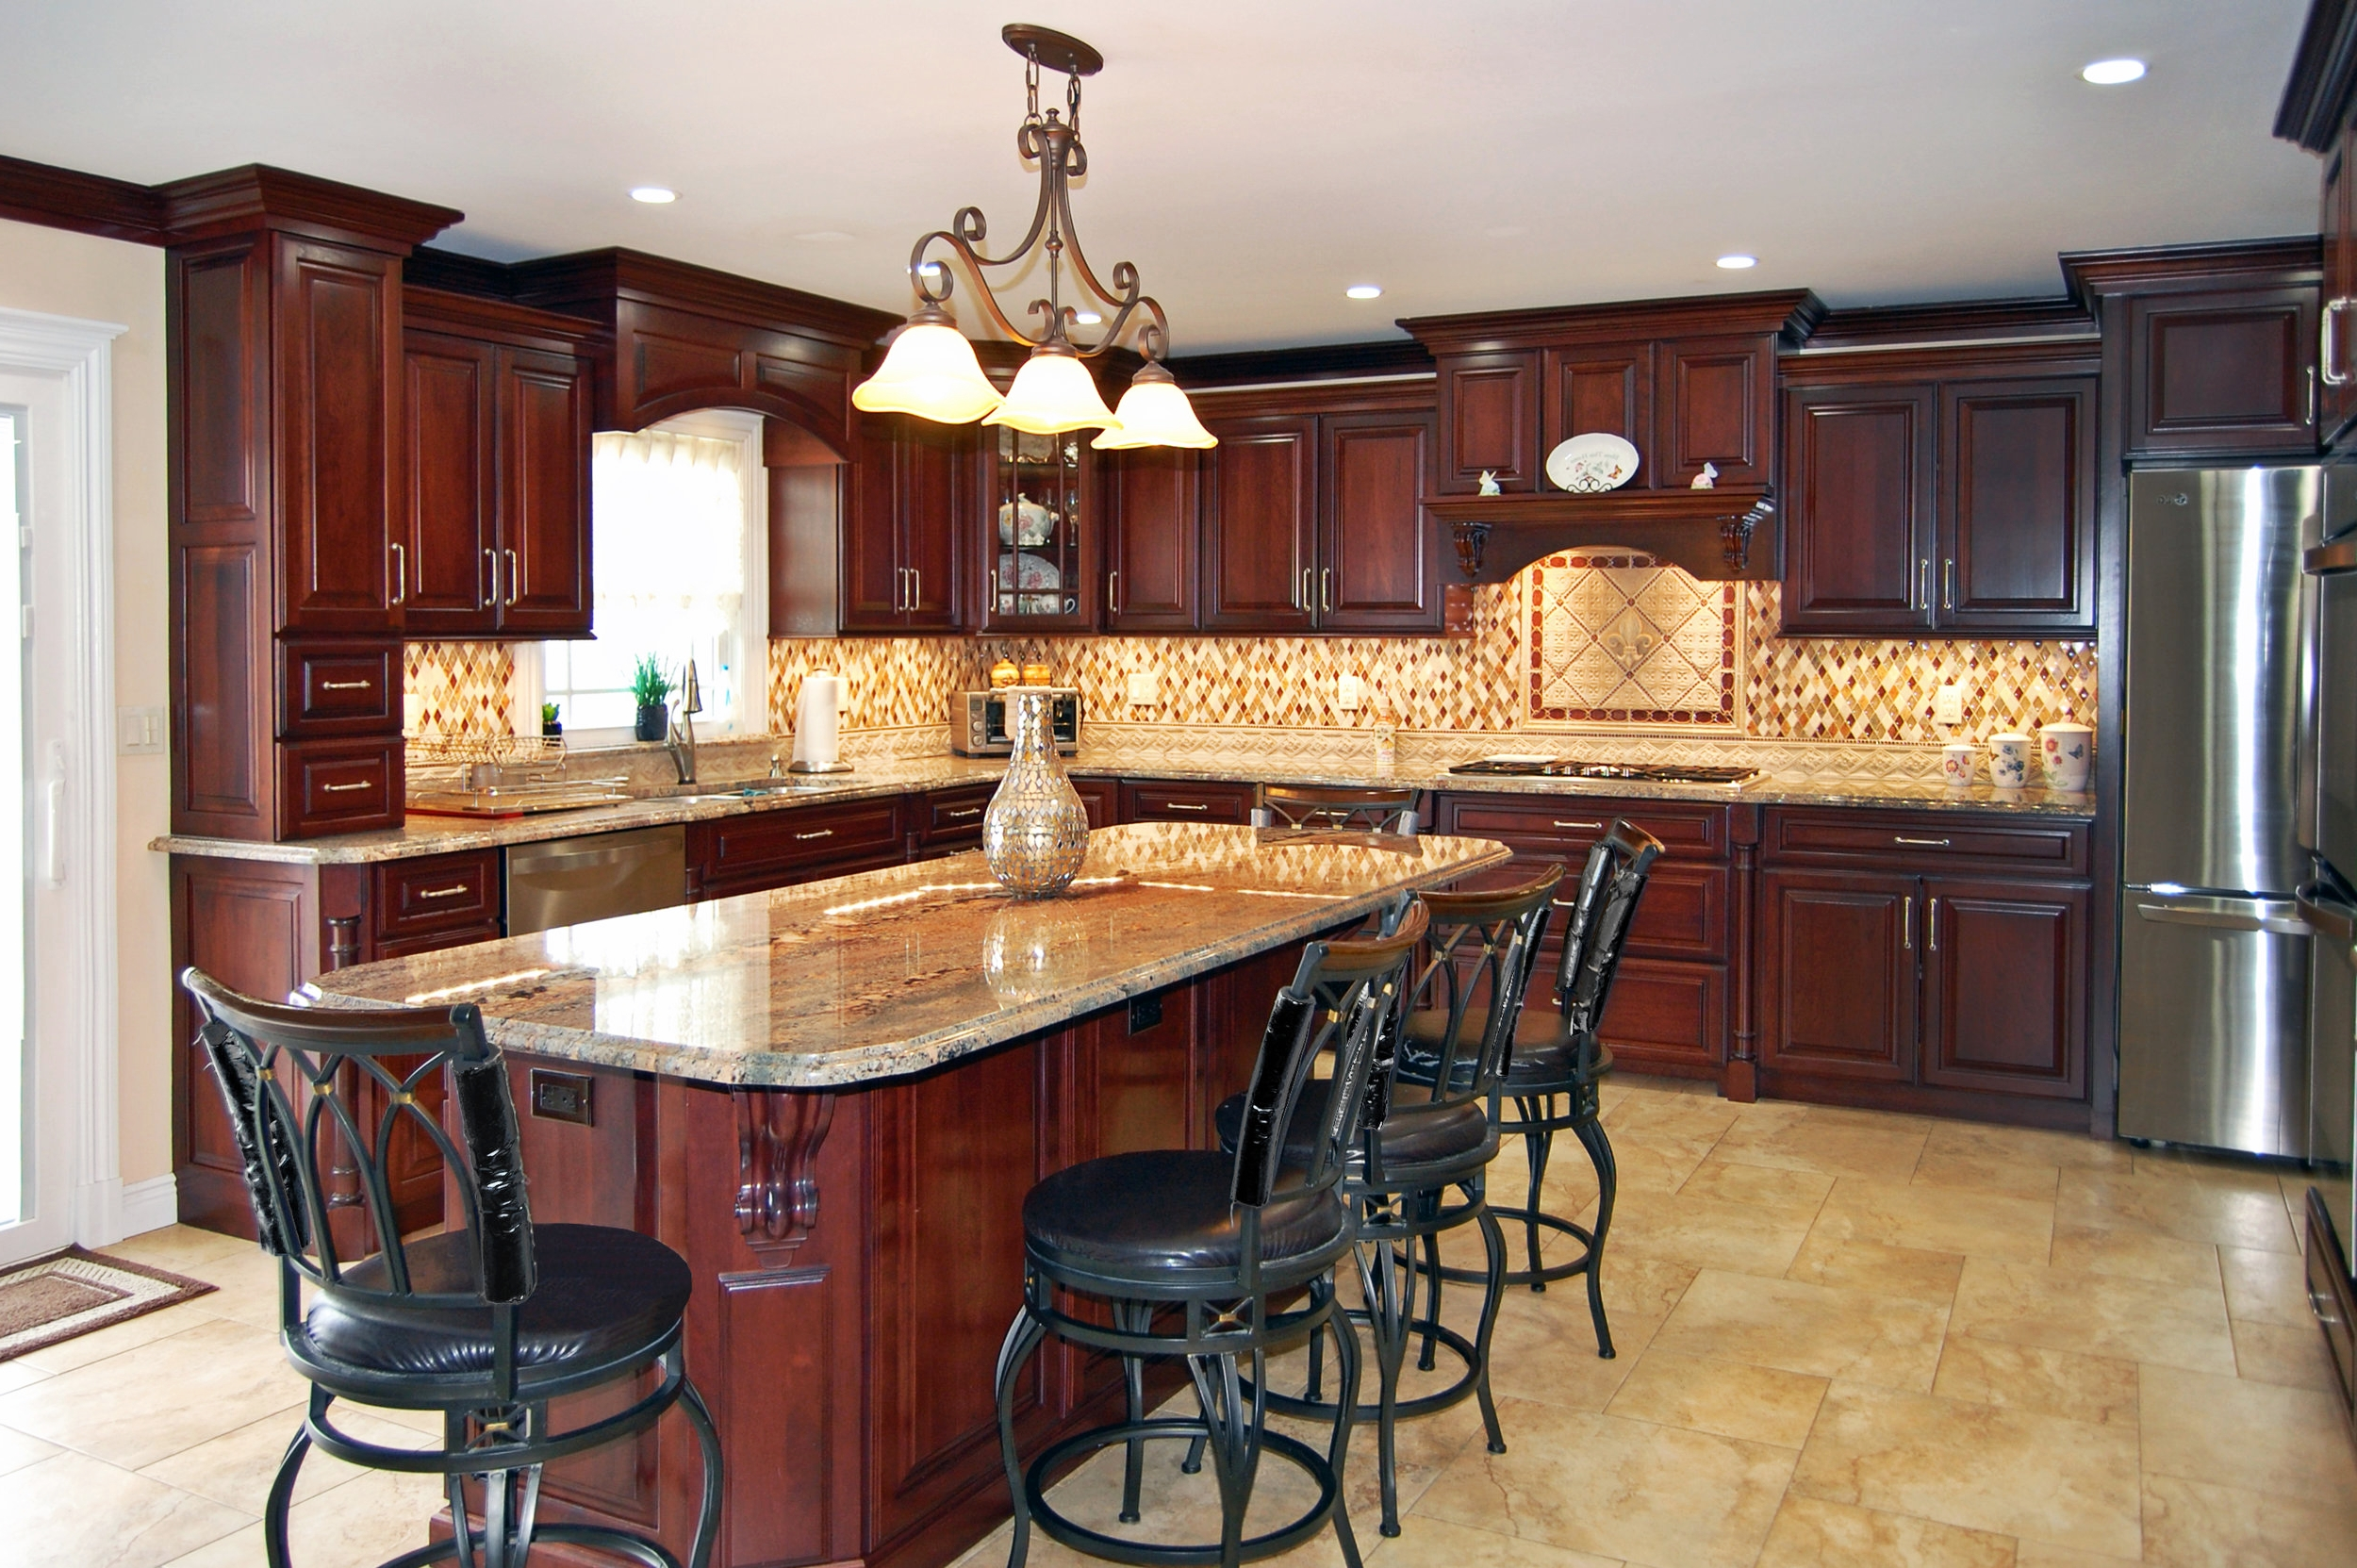 need a new kitchen or bathroom? - Marcel's Custom Kitchens and Baths offers custom and fully designed rooms to fit your needs.